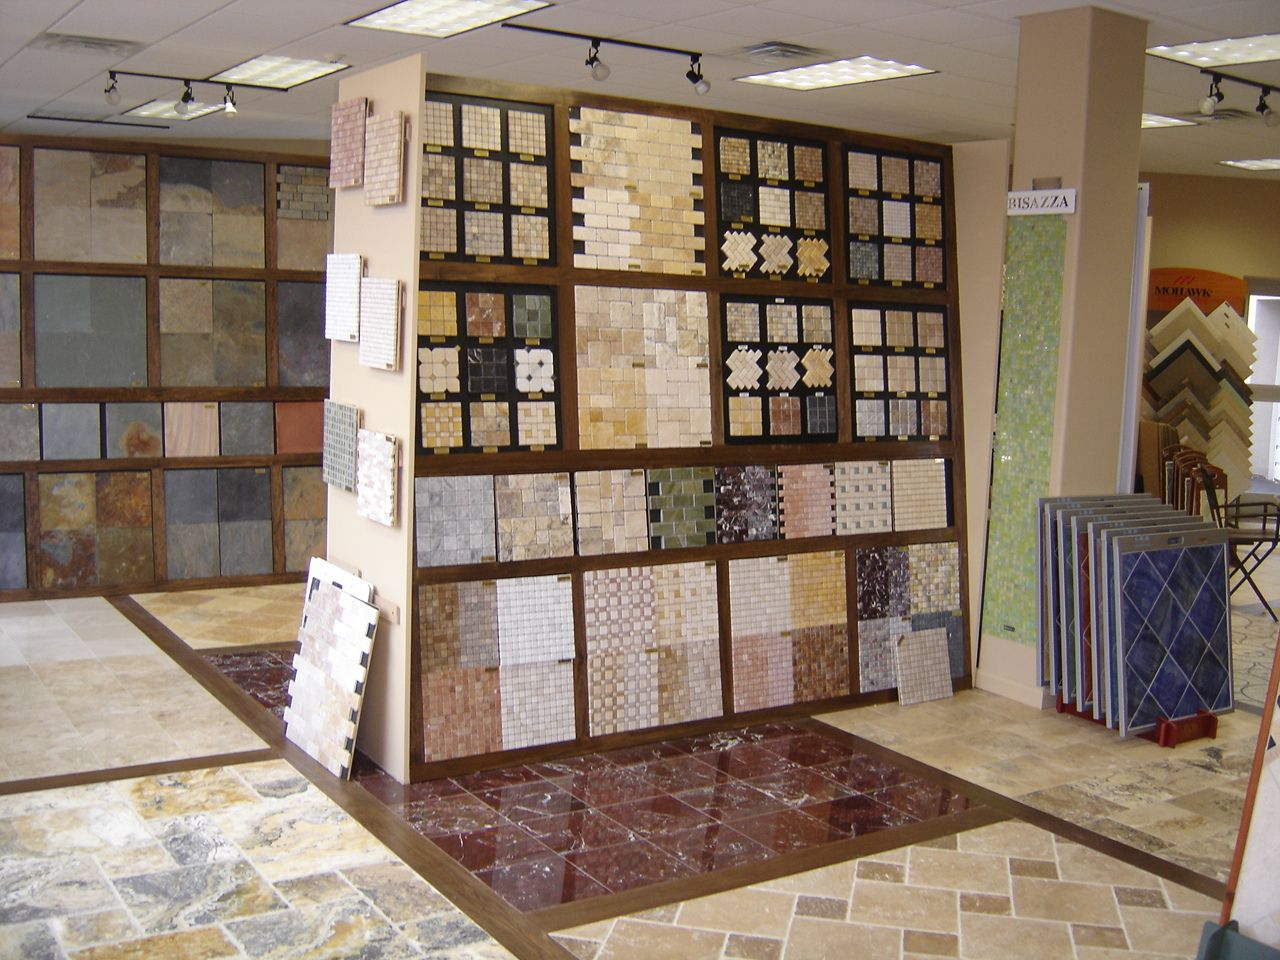 showroom 2 | Ceramic Tile Showroom Idea | Pinterest | Showroom ...